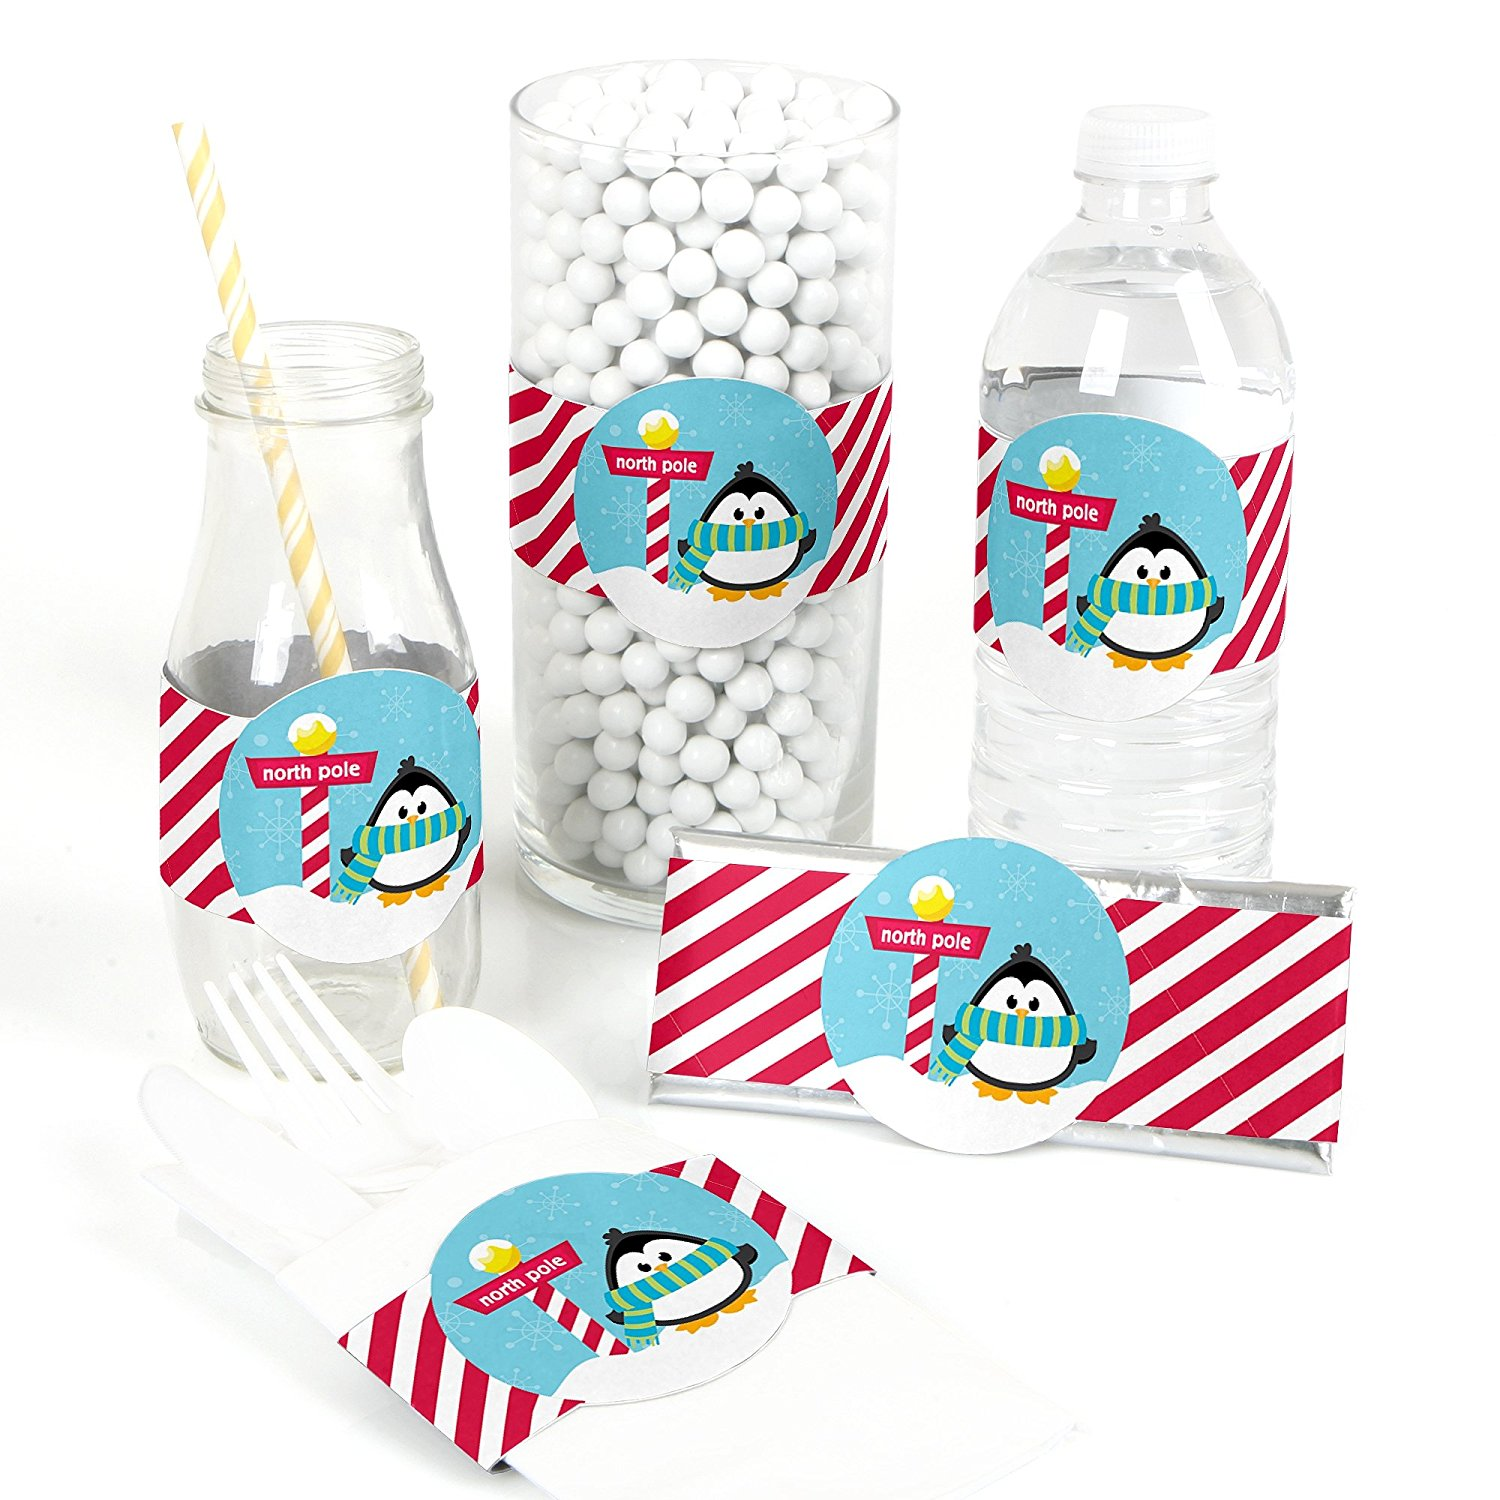 Holly Jolly Penguin - DIY Party Supplies - Holiday & Christmas Party DIY Wrapper Favors & Decorations - Set of 15